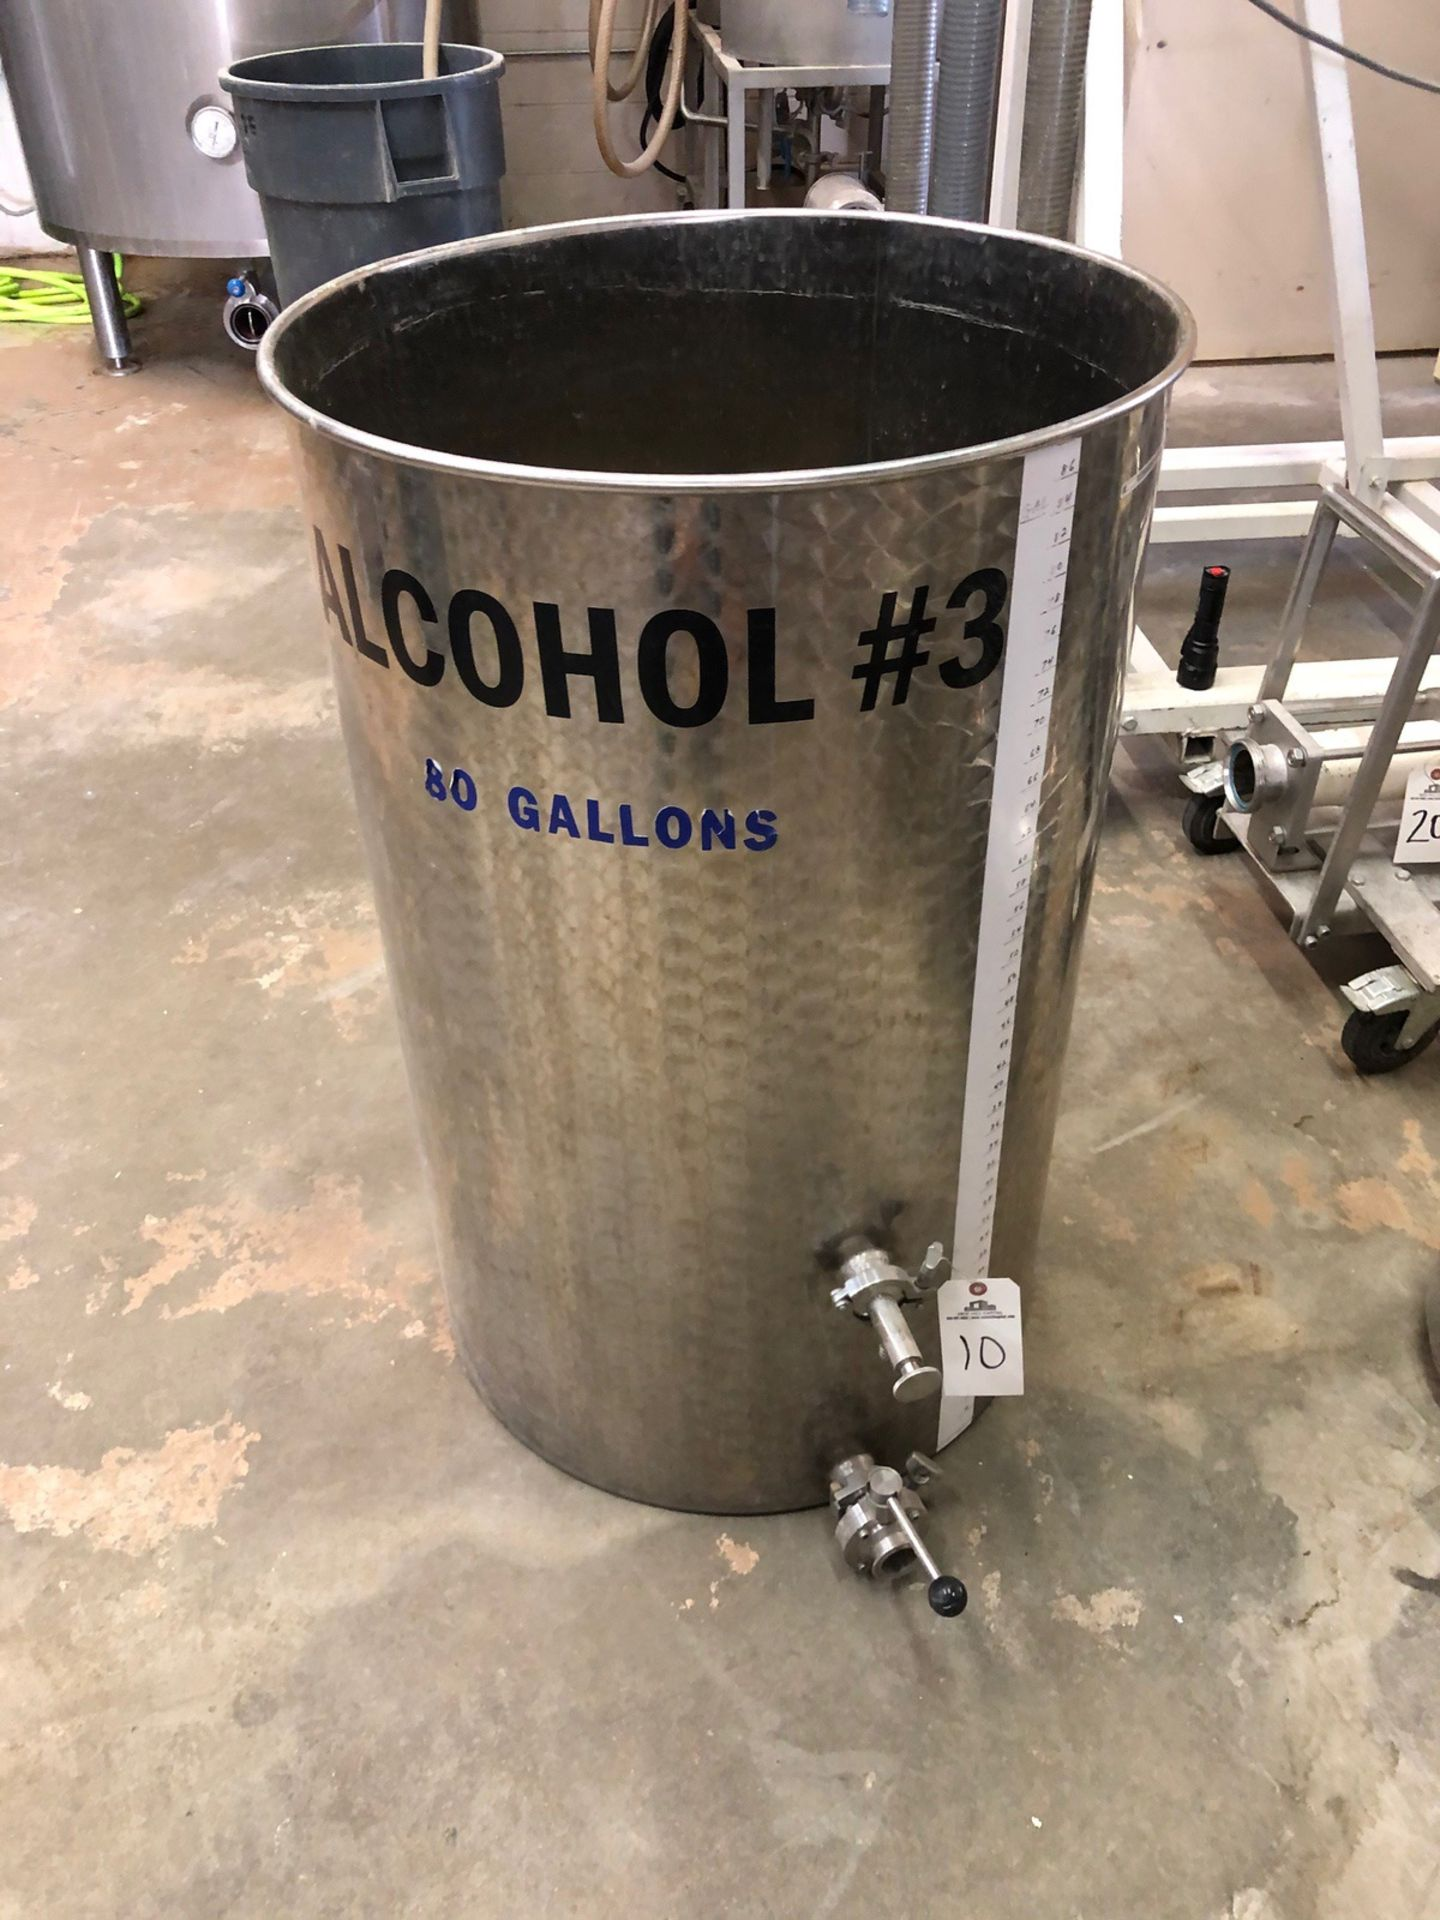 Lot 10 - 80 Gallon Stainless Holding Tank, Approx 25in OD x 40in OAH | Sub to Bulk | Rig Fee: $75